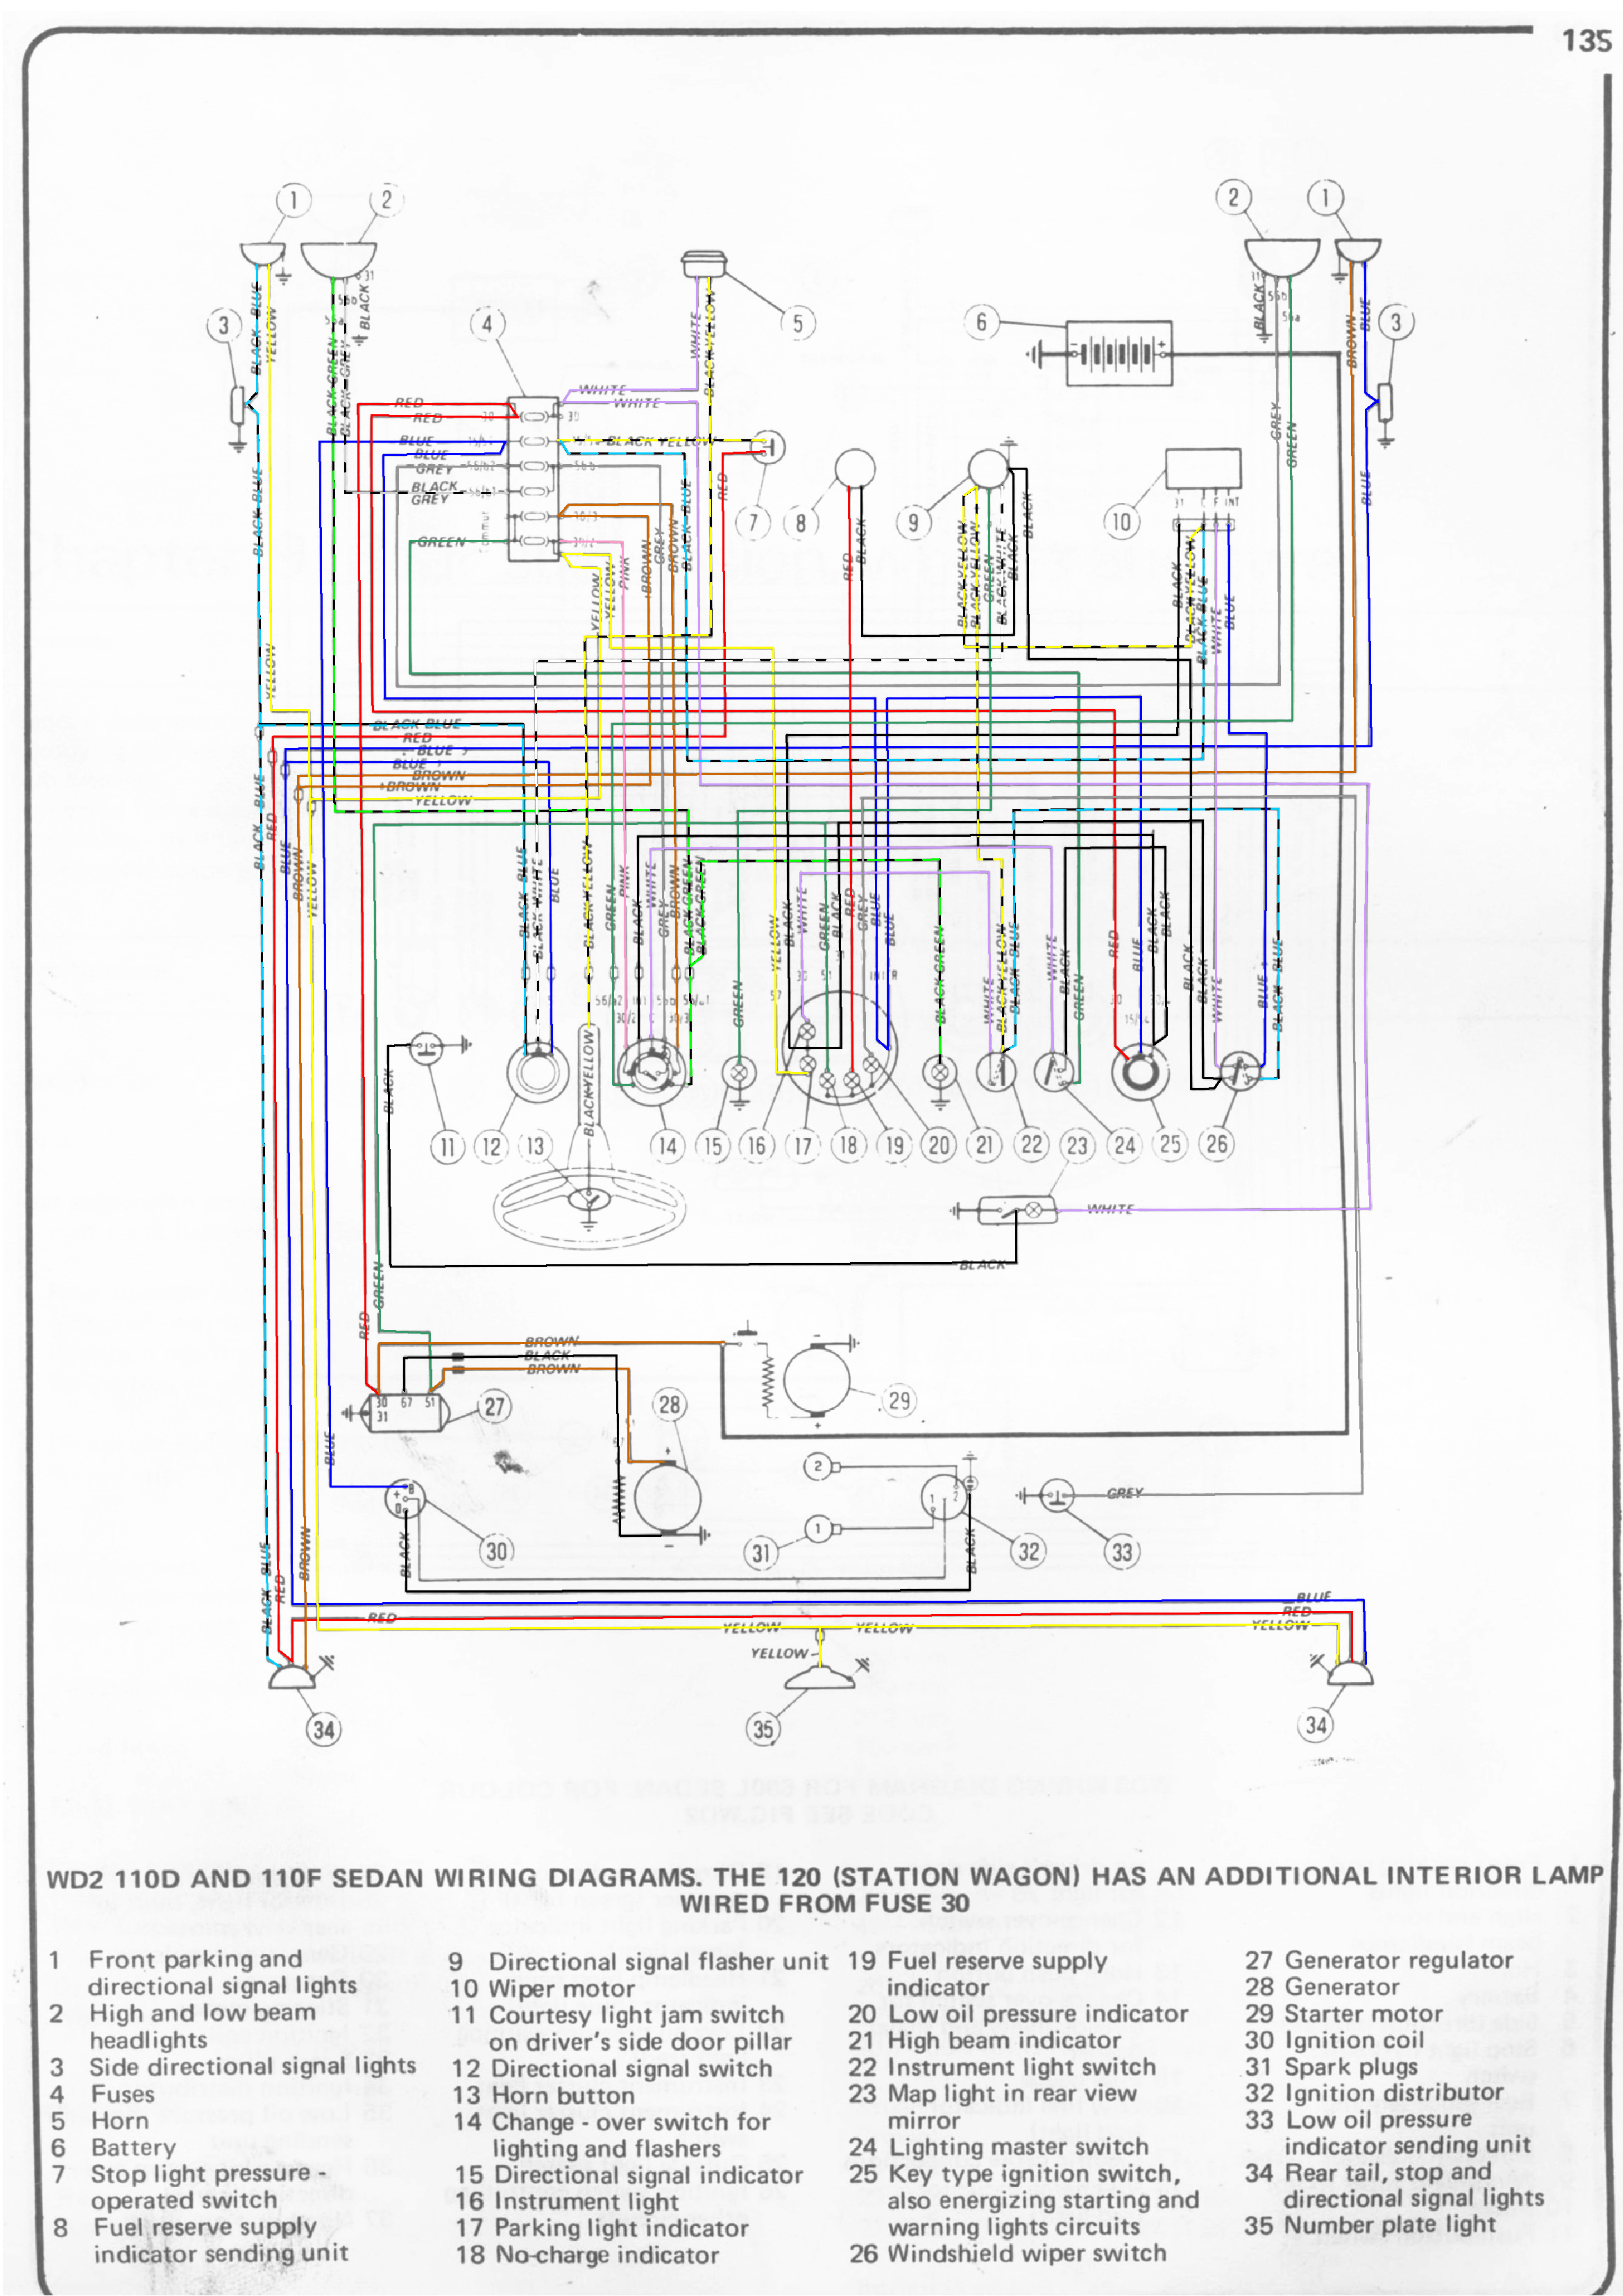 small resolution of fiat 500l wiring diagram schema diagram preview fiat 500 l wiring diagram schema diagram preview fiat